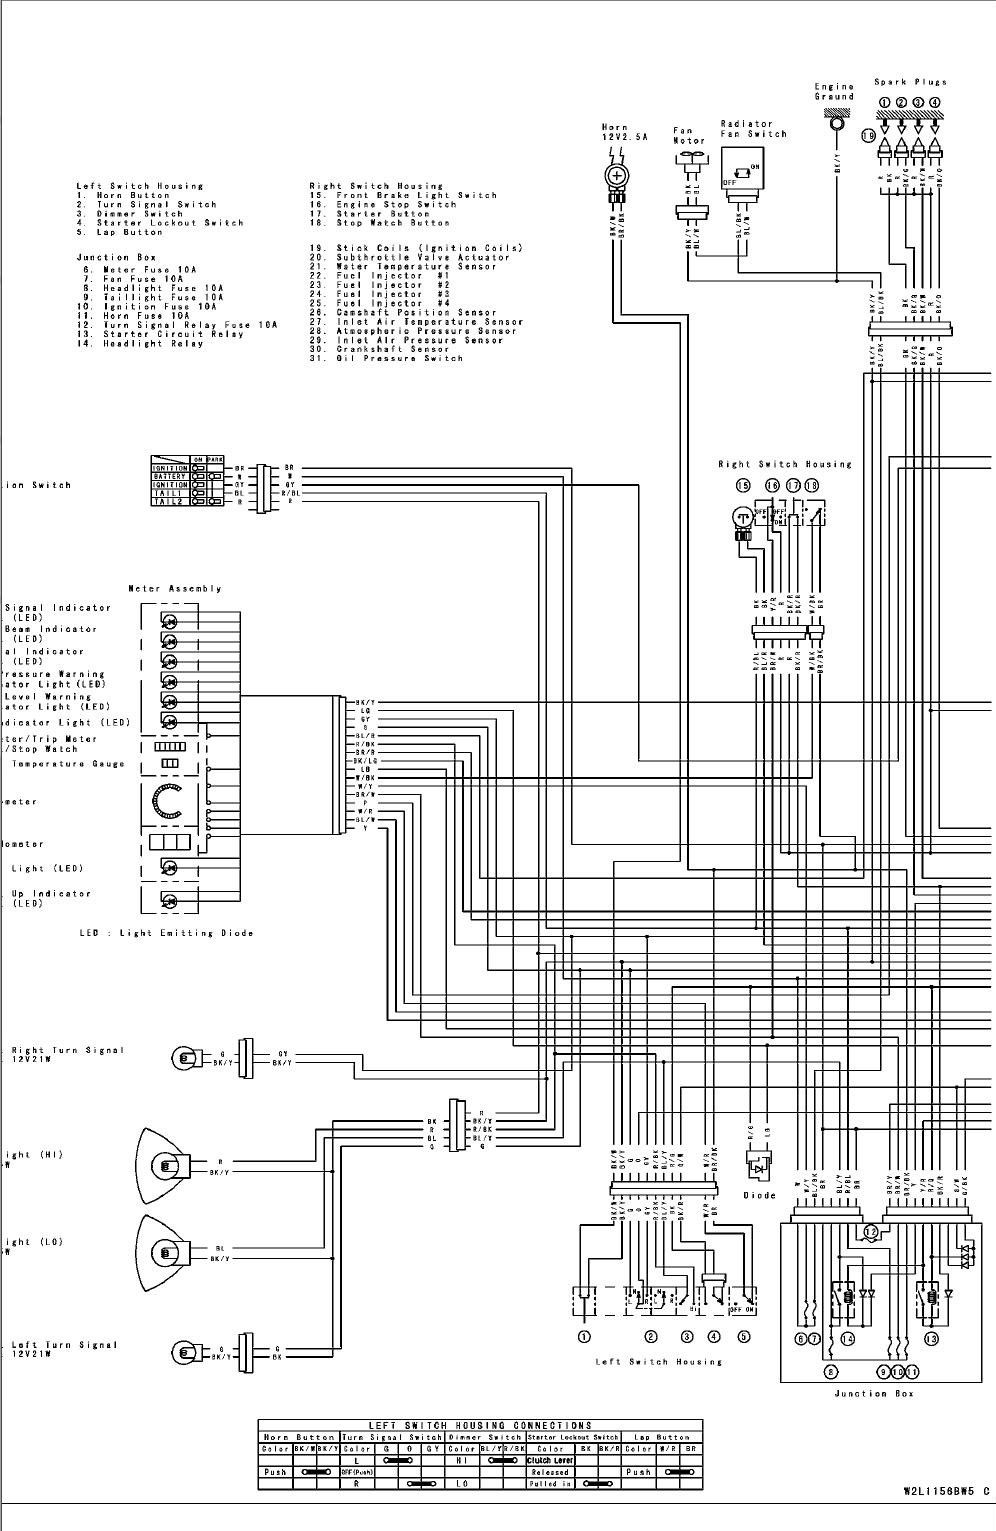 kawasaki 600 wiring diagram wiring diagram sample kawasaki zzr 600 wiring diagram kawasaki 600 wiring diagram [ 996 x 1531 Pixel ]